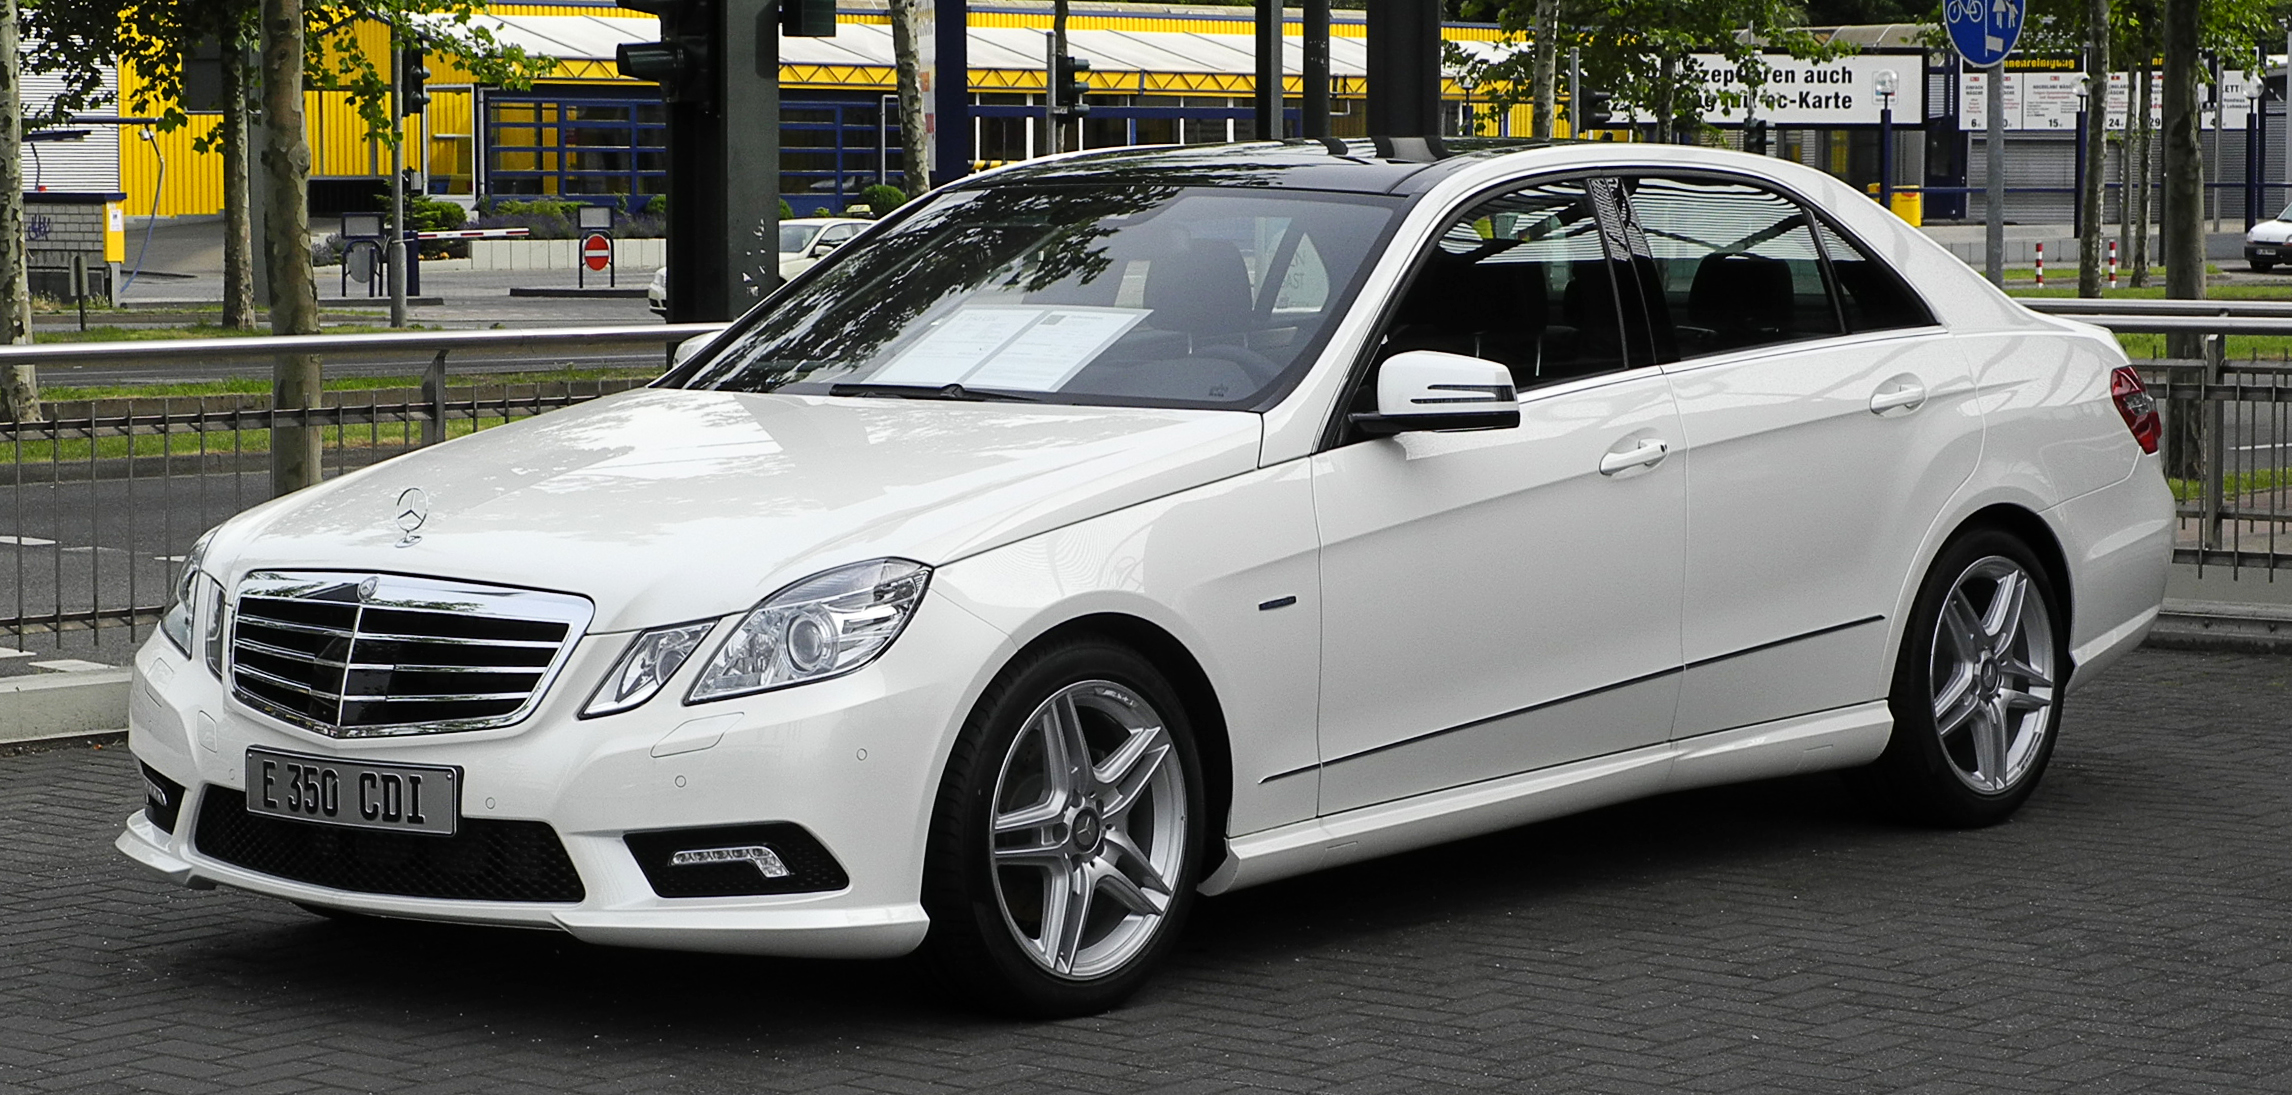 mercedes benz e 350 cdi 4matic photos and comments www